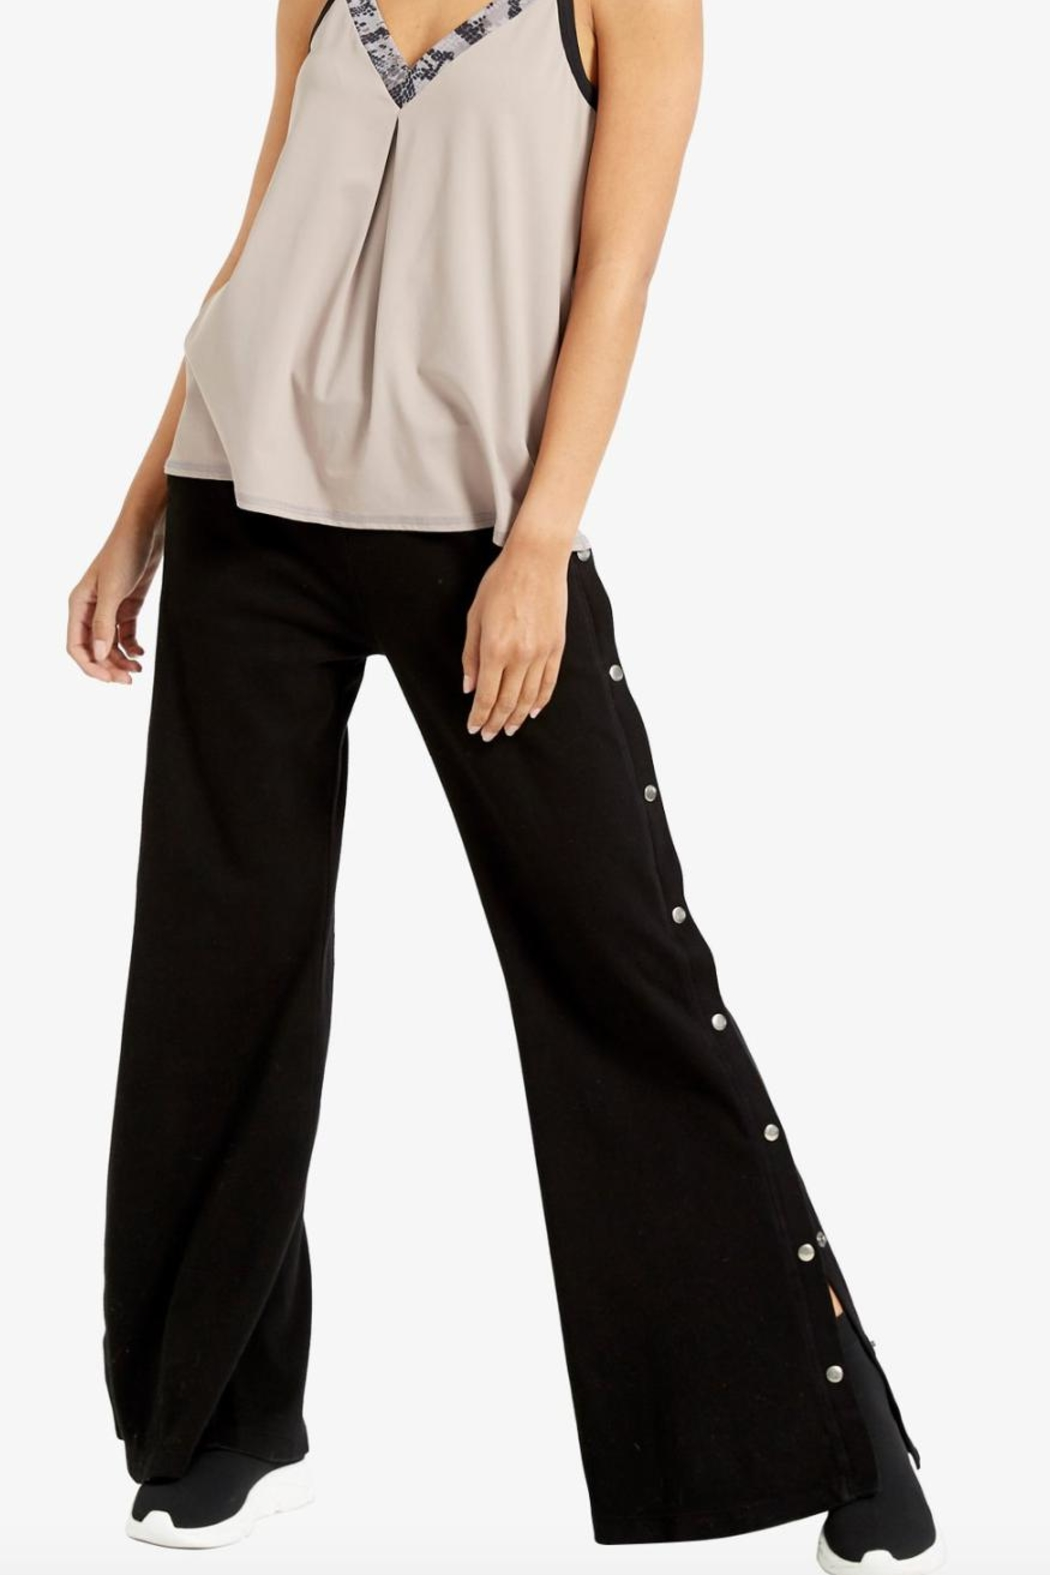 Vimmia Boundary Snap Pant - Side Cropped Image